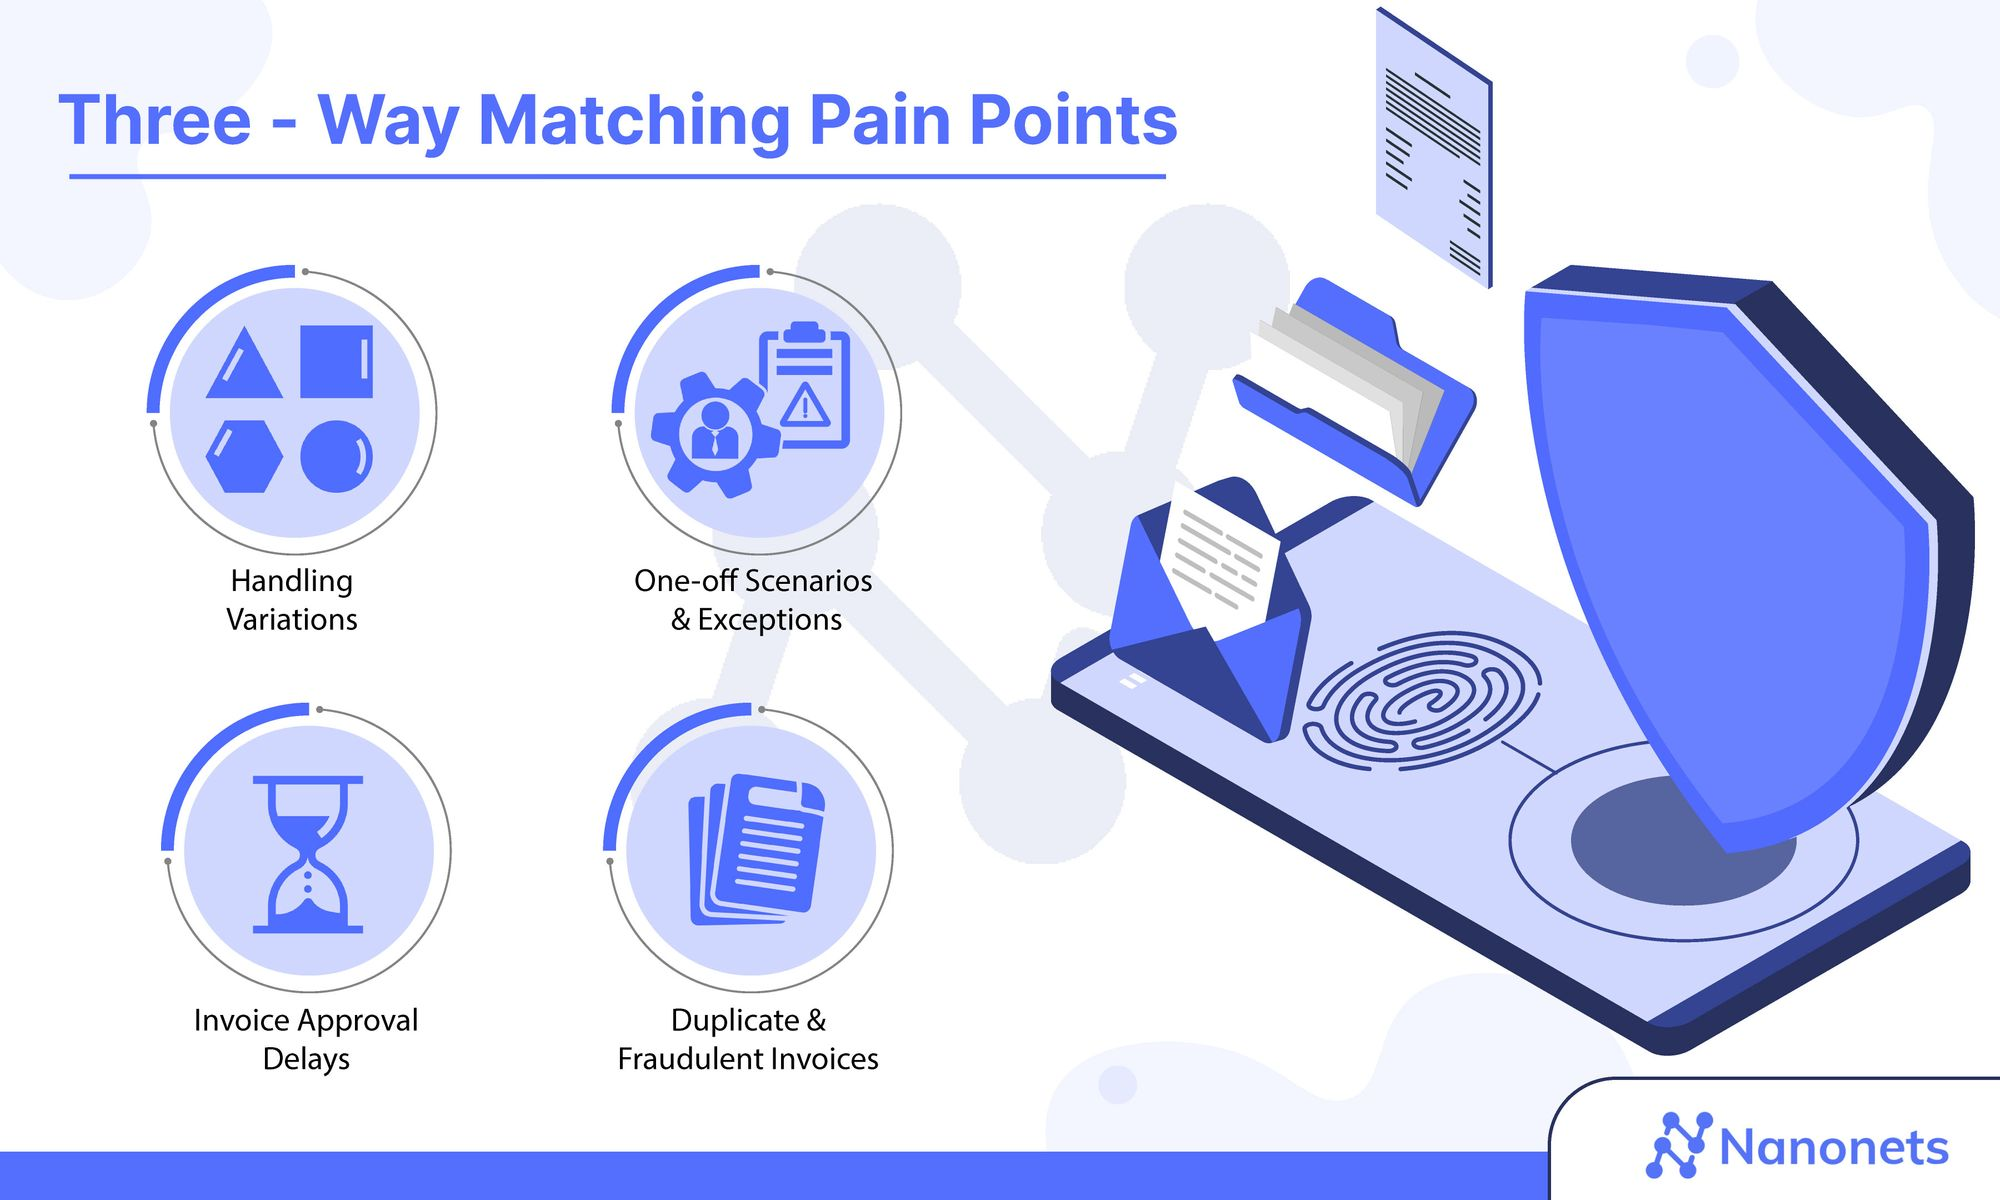 3-Way Matching Pain Points